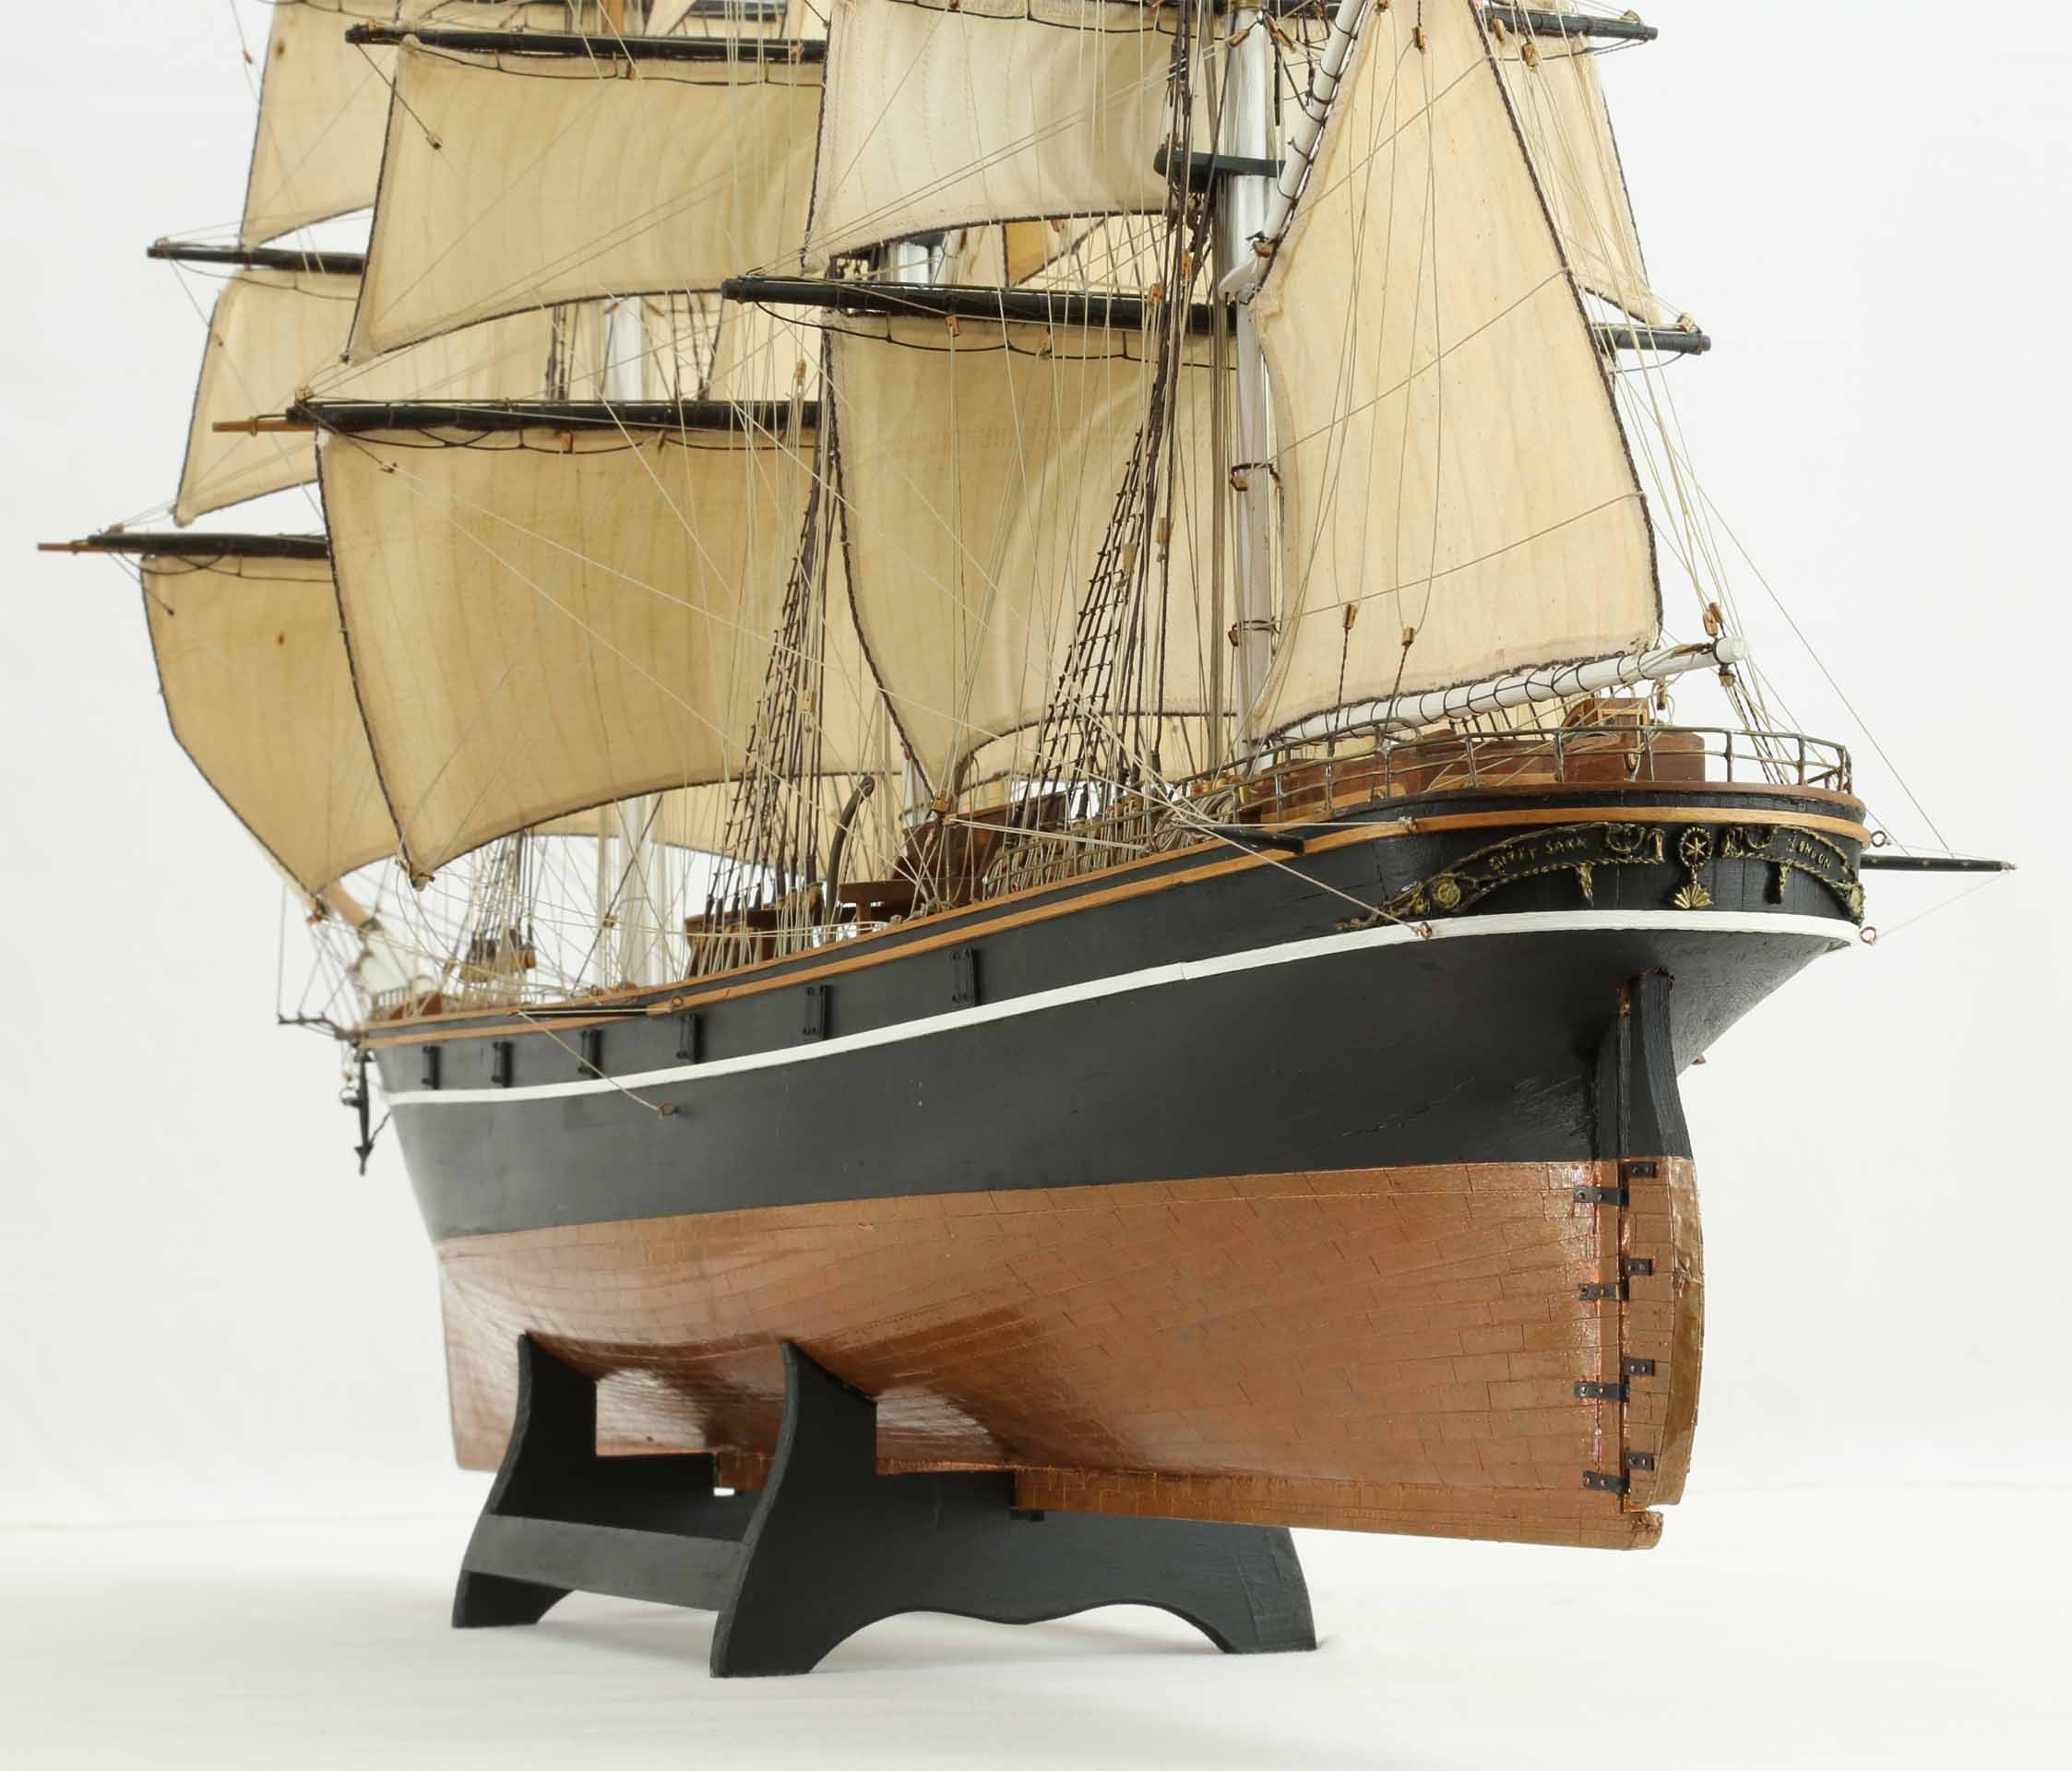 Photos ship model Cutty Sark, views of details